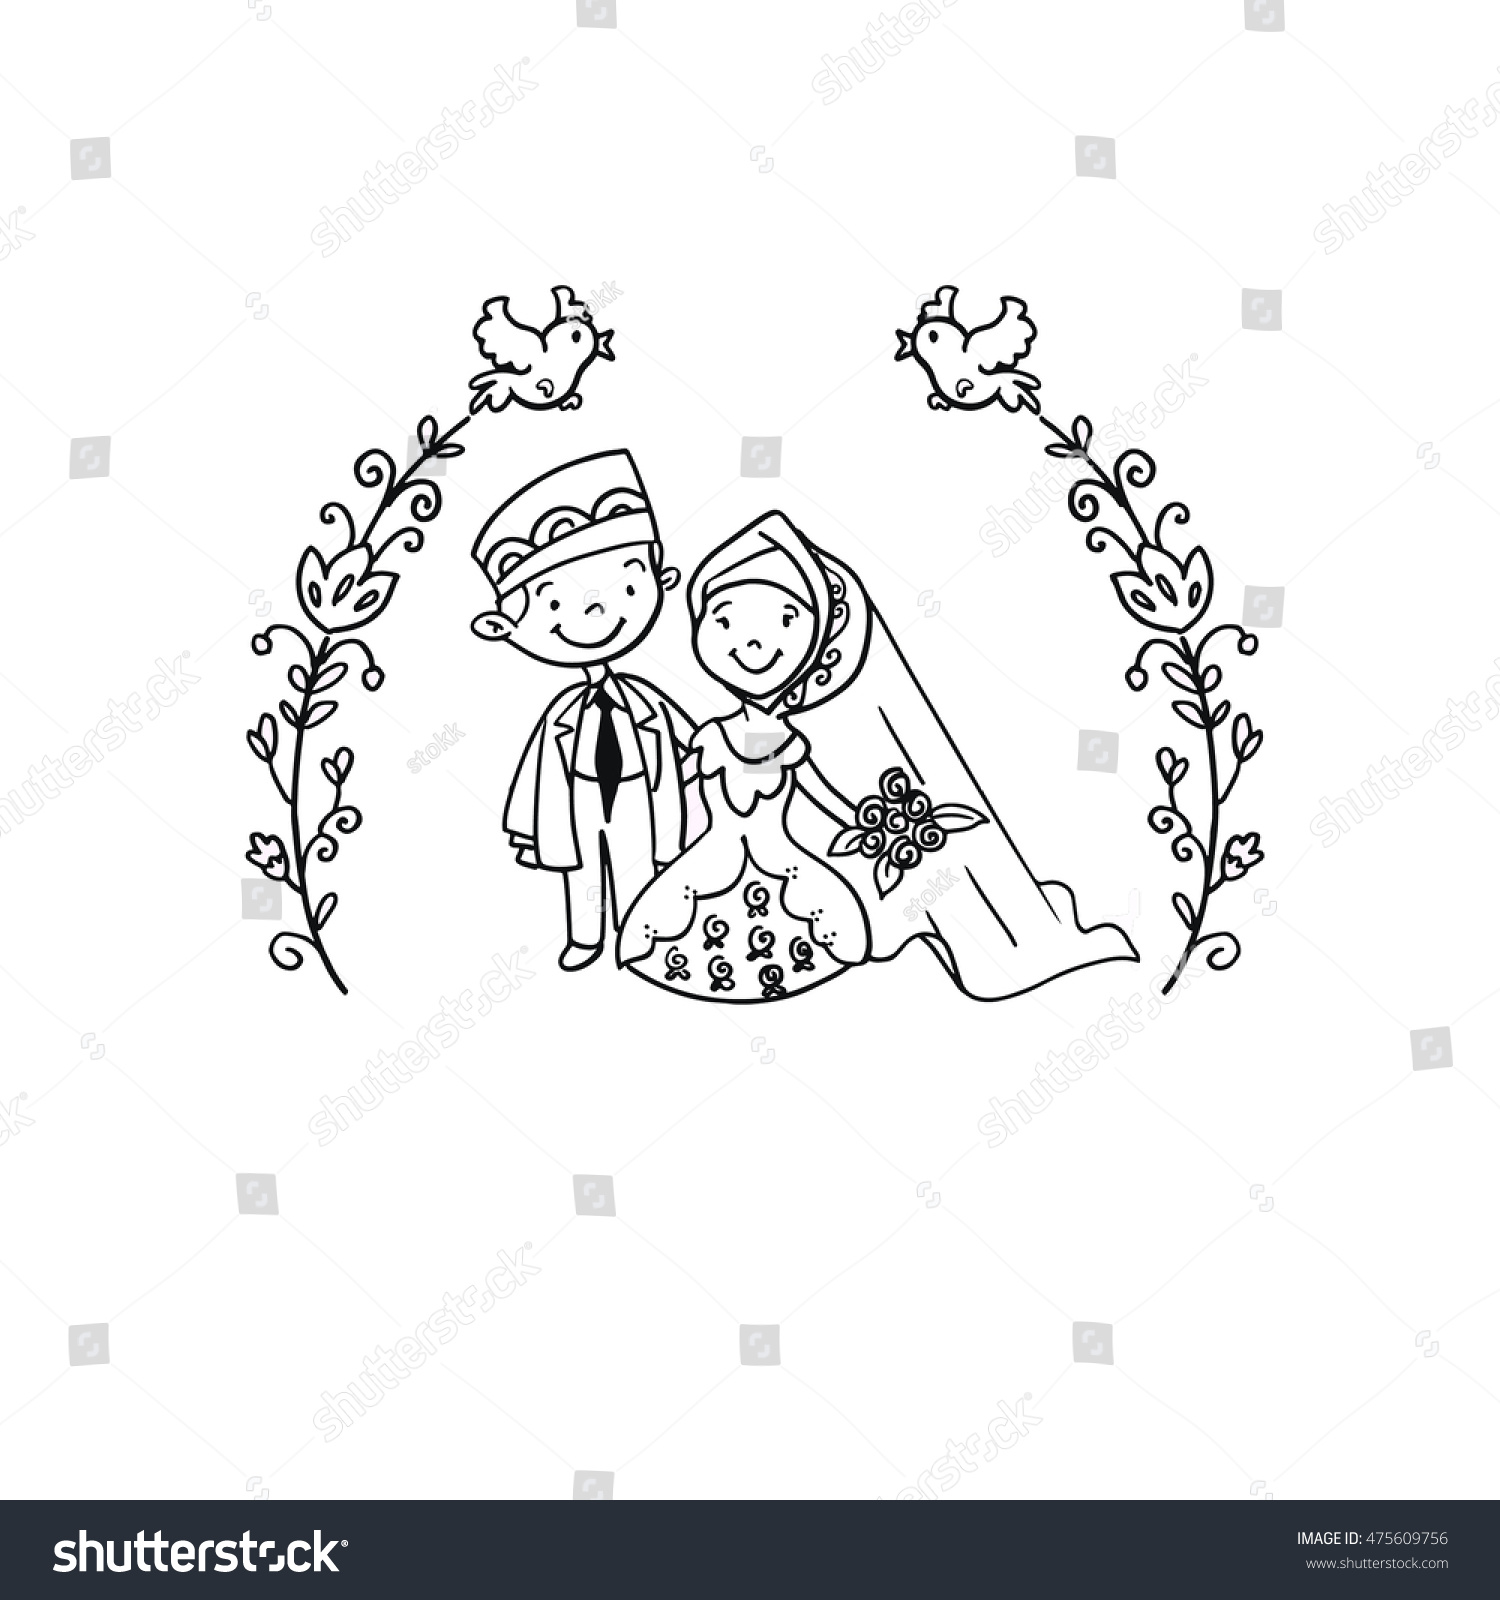 Anime muslim couple drawings islamic wedding couple doodle illustration